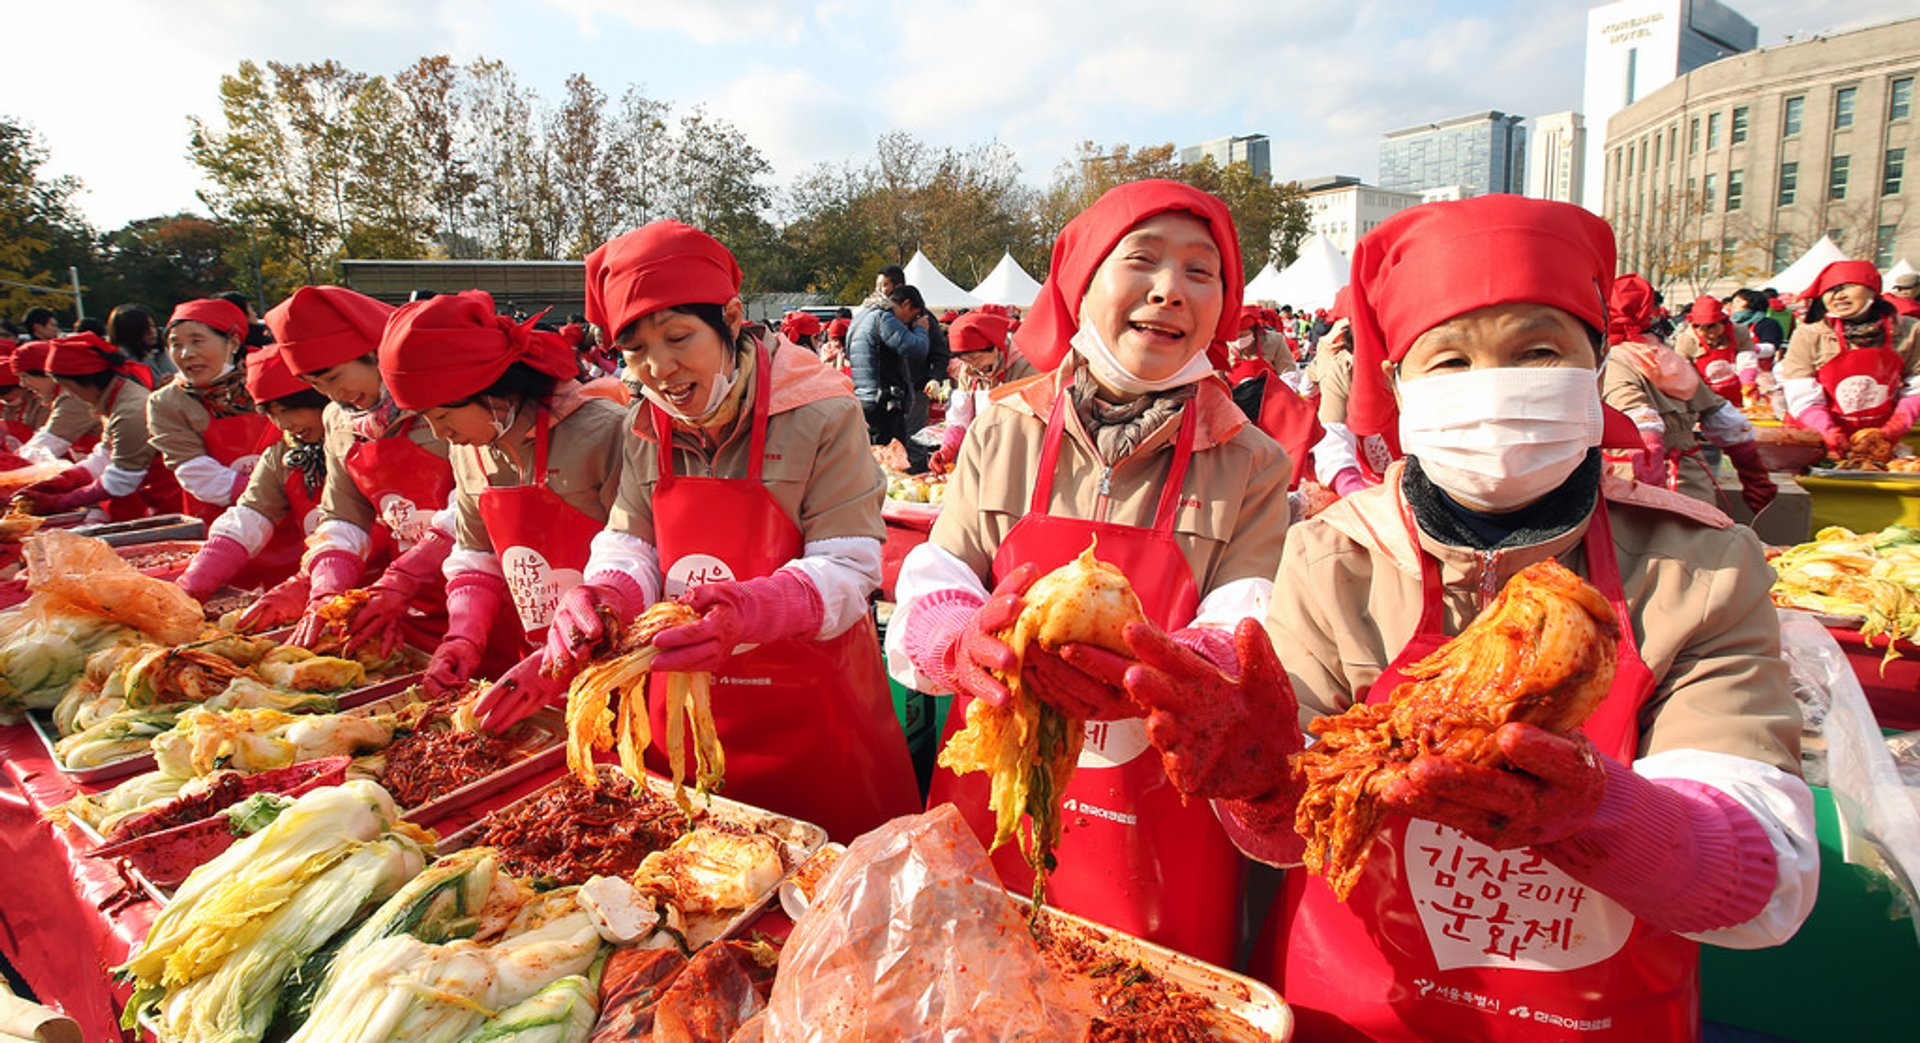 Kimchi Festival in Seoul 2020 - Best Time